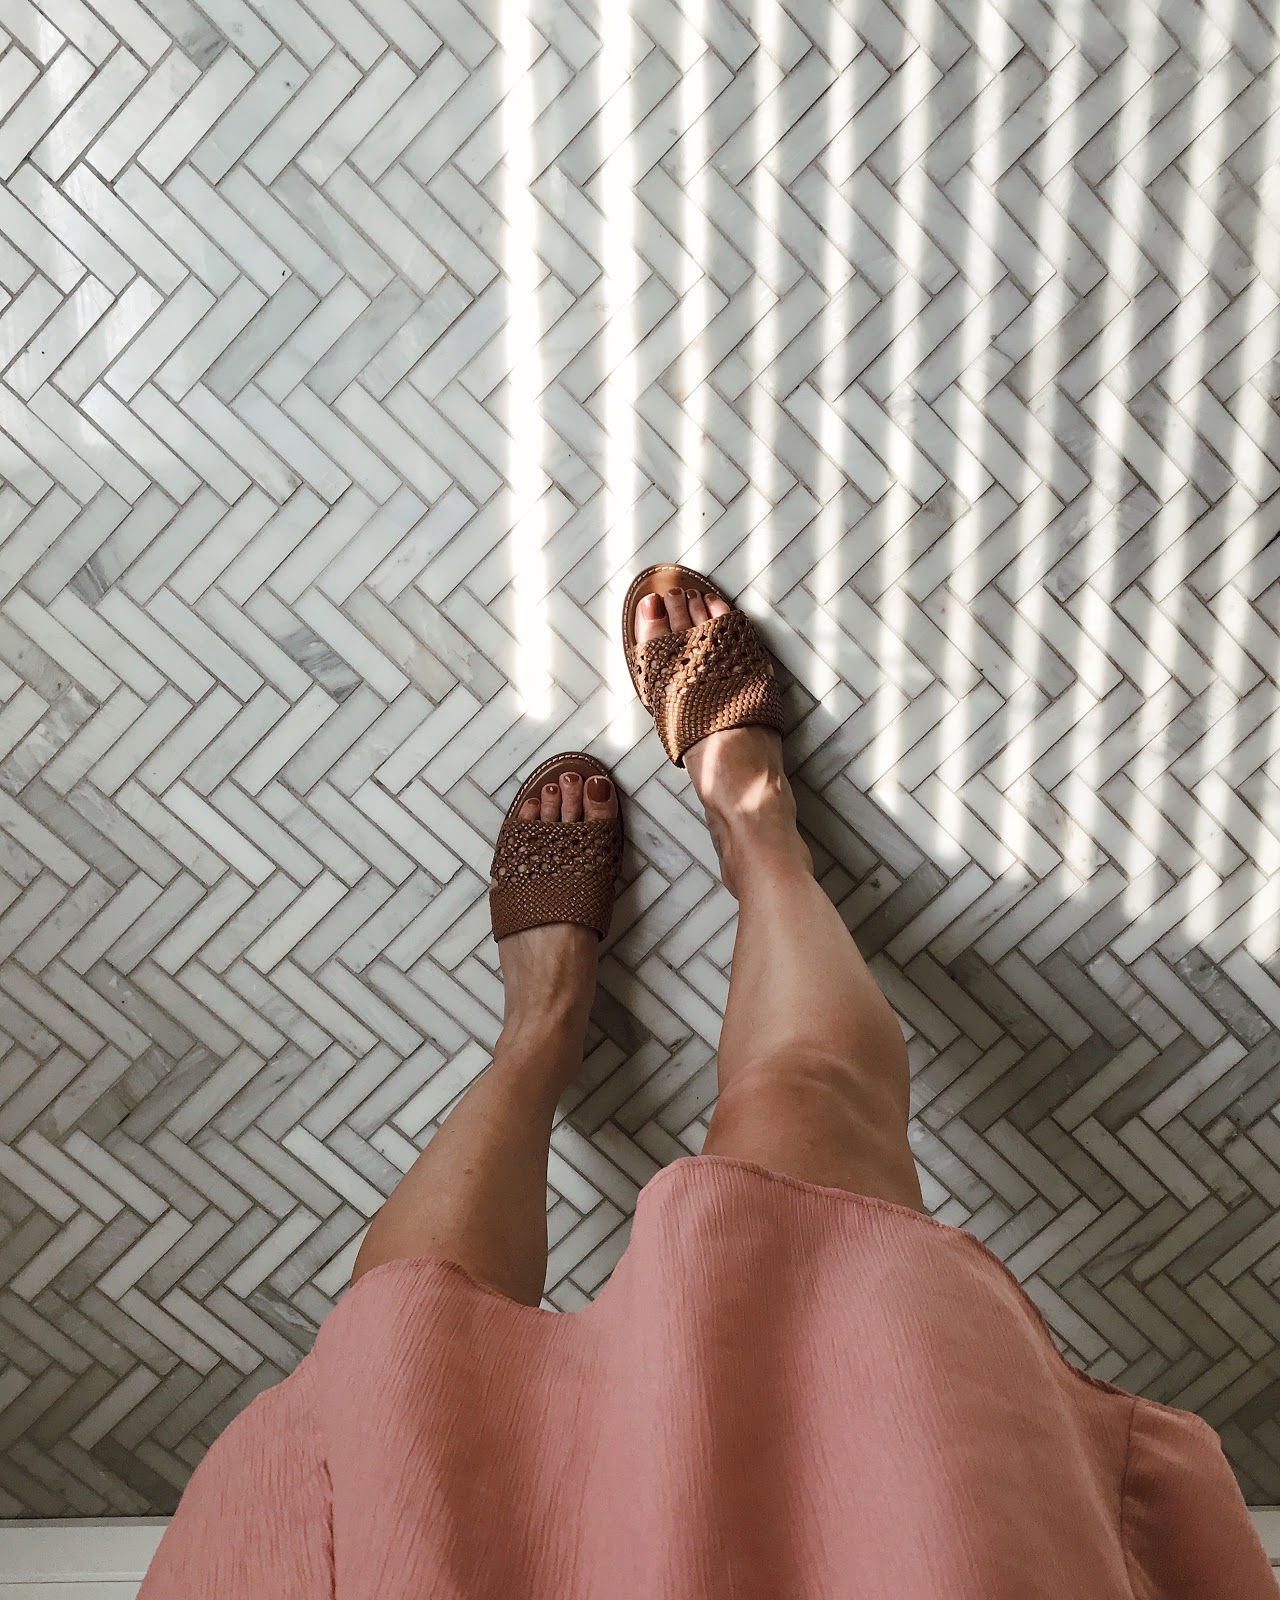 Slide sandals / herringbone tile floor